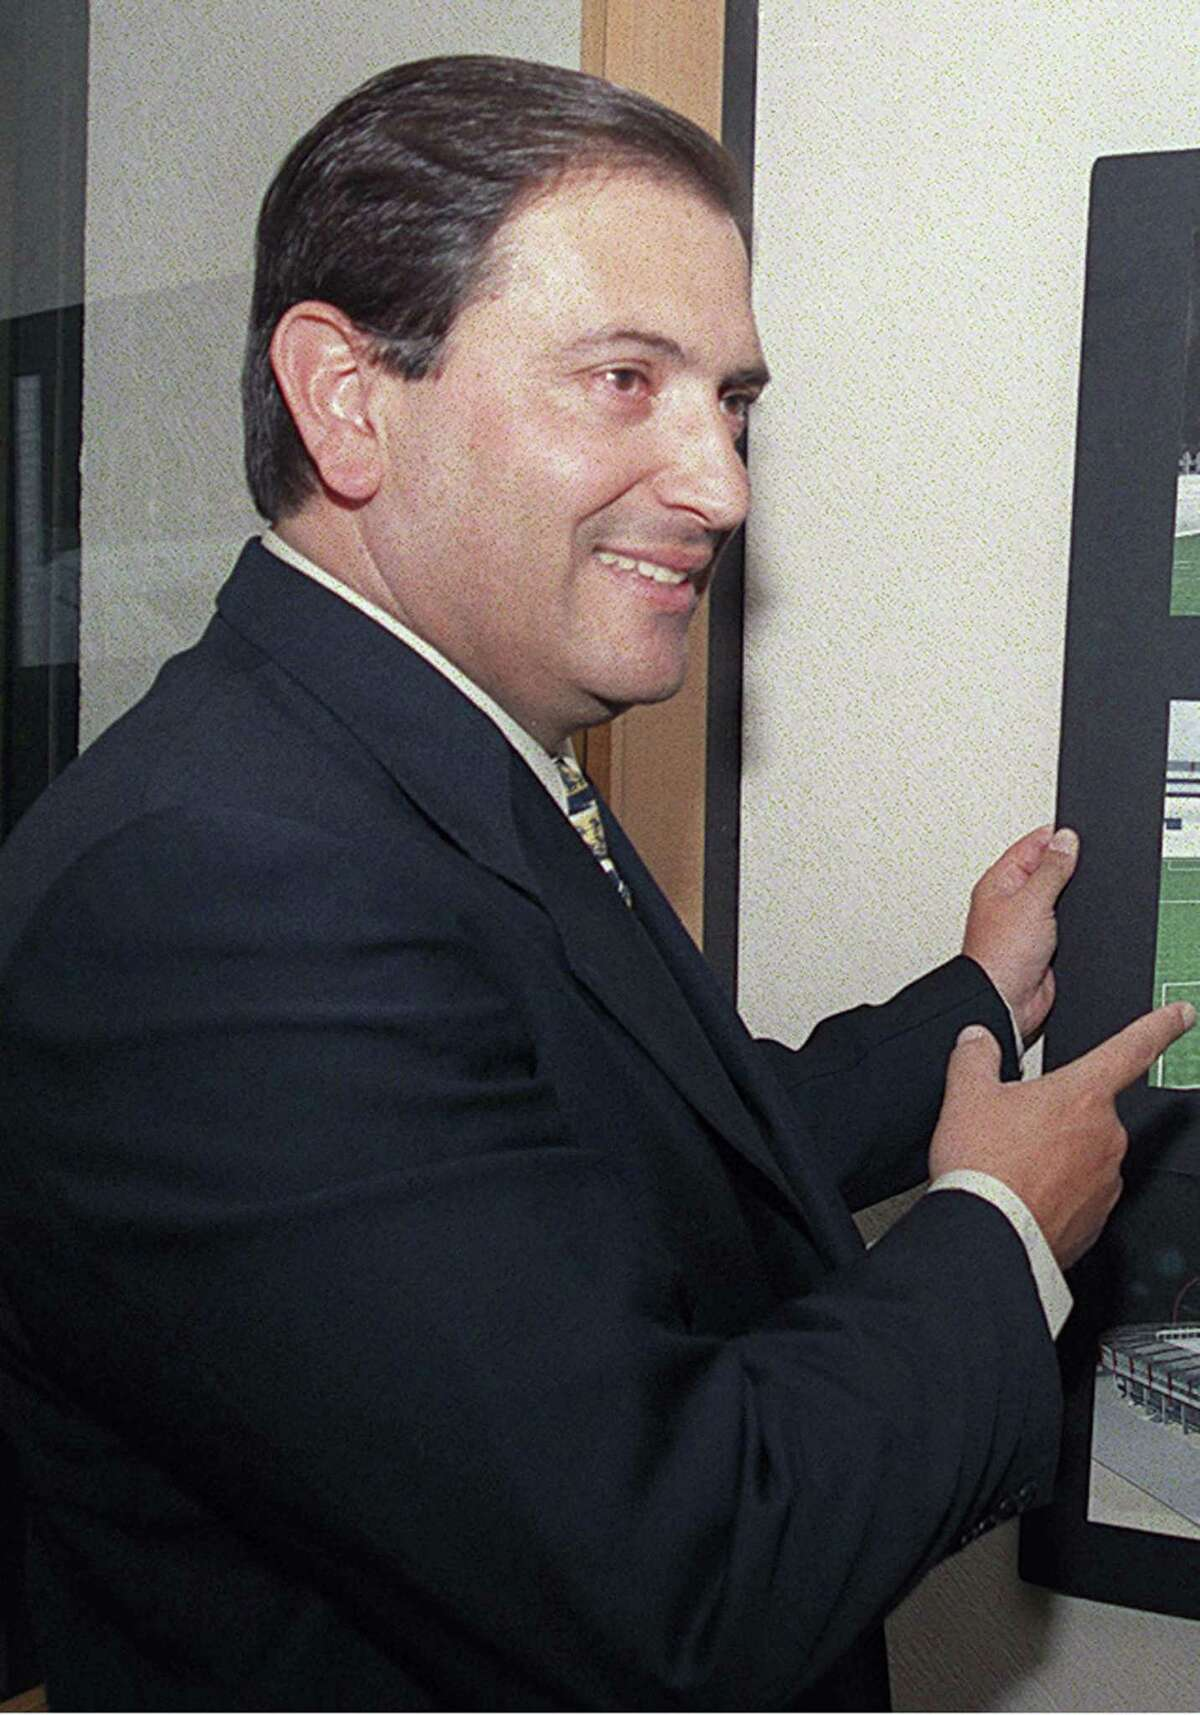 Luis Armando Reynoso Femat, the governor of the Mexican state of Aguascalientes from 2004 to 2010, was sentenced in 2017 to more than six years in prison for embezzlement. The U.S. government is attempting to seize millions of dollars worth of real estate in the San Antonio area it says was bought with embezzled funds in his son's name.